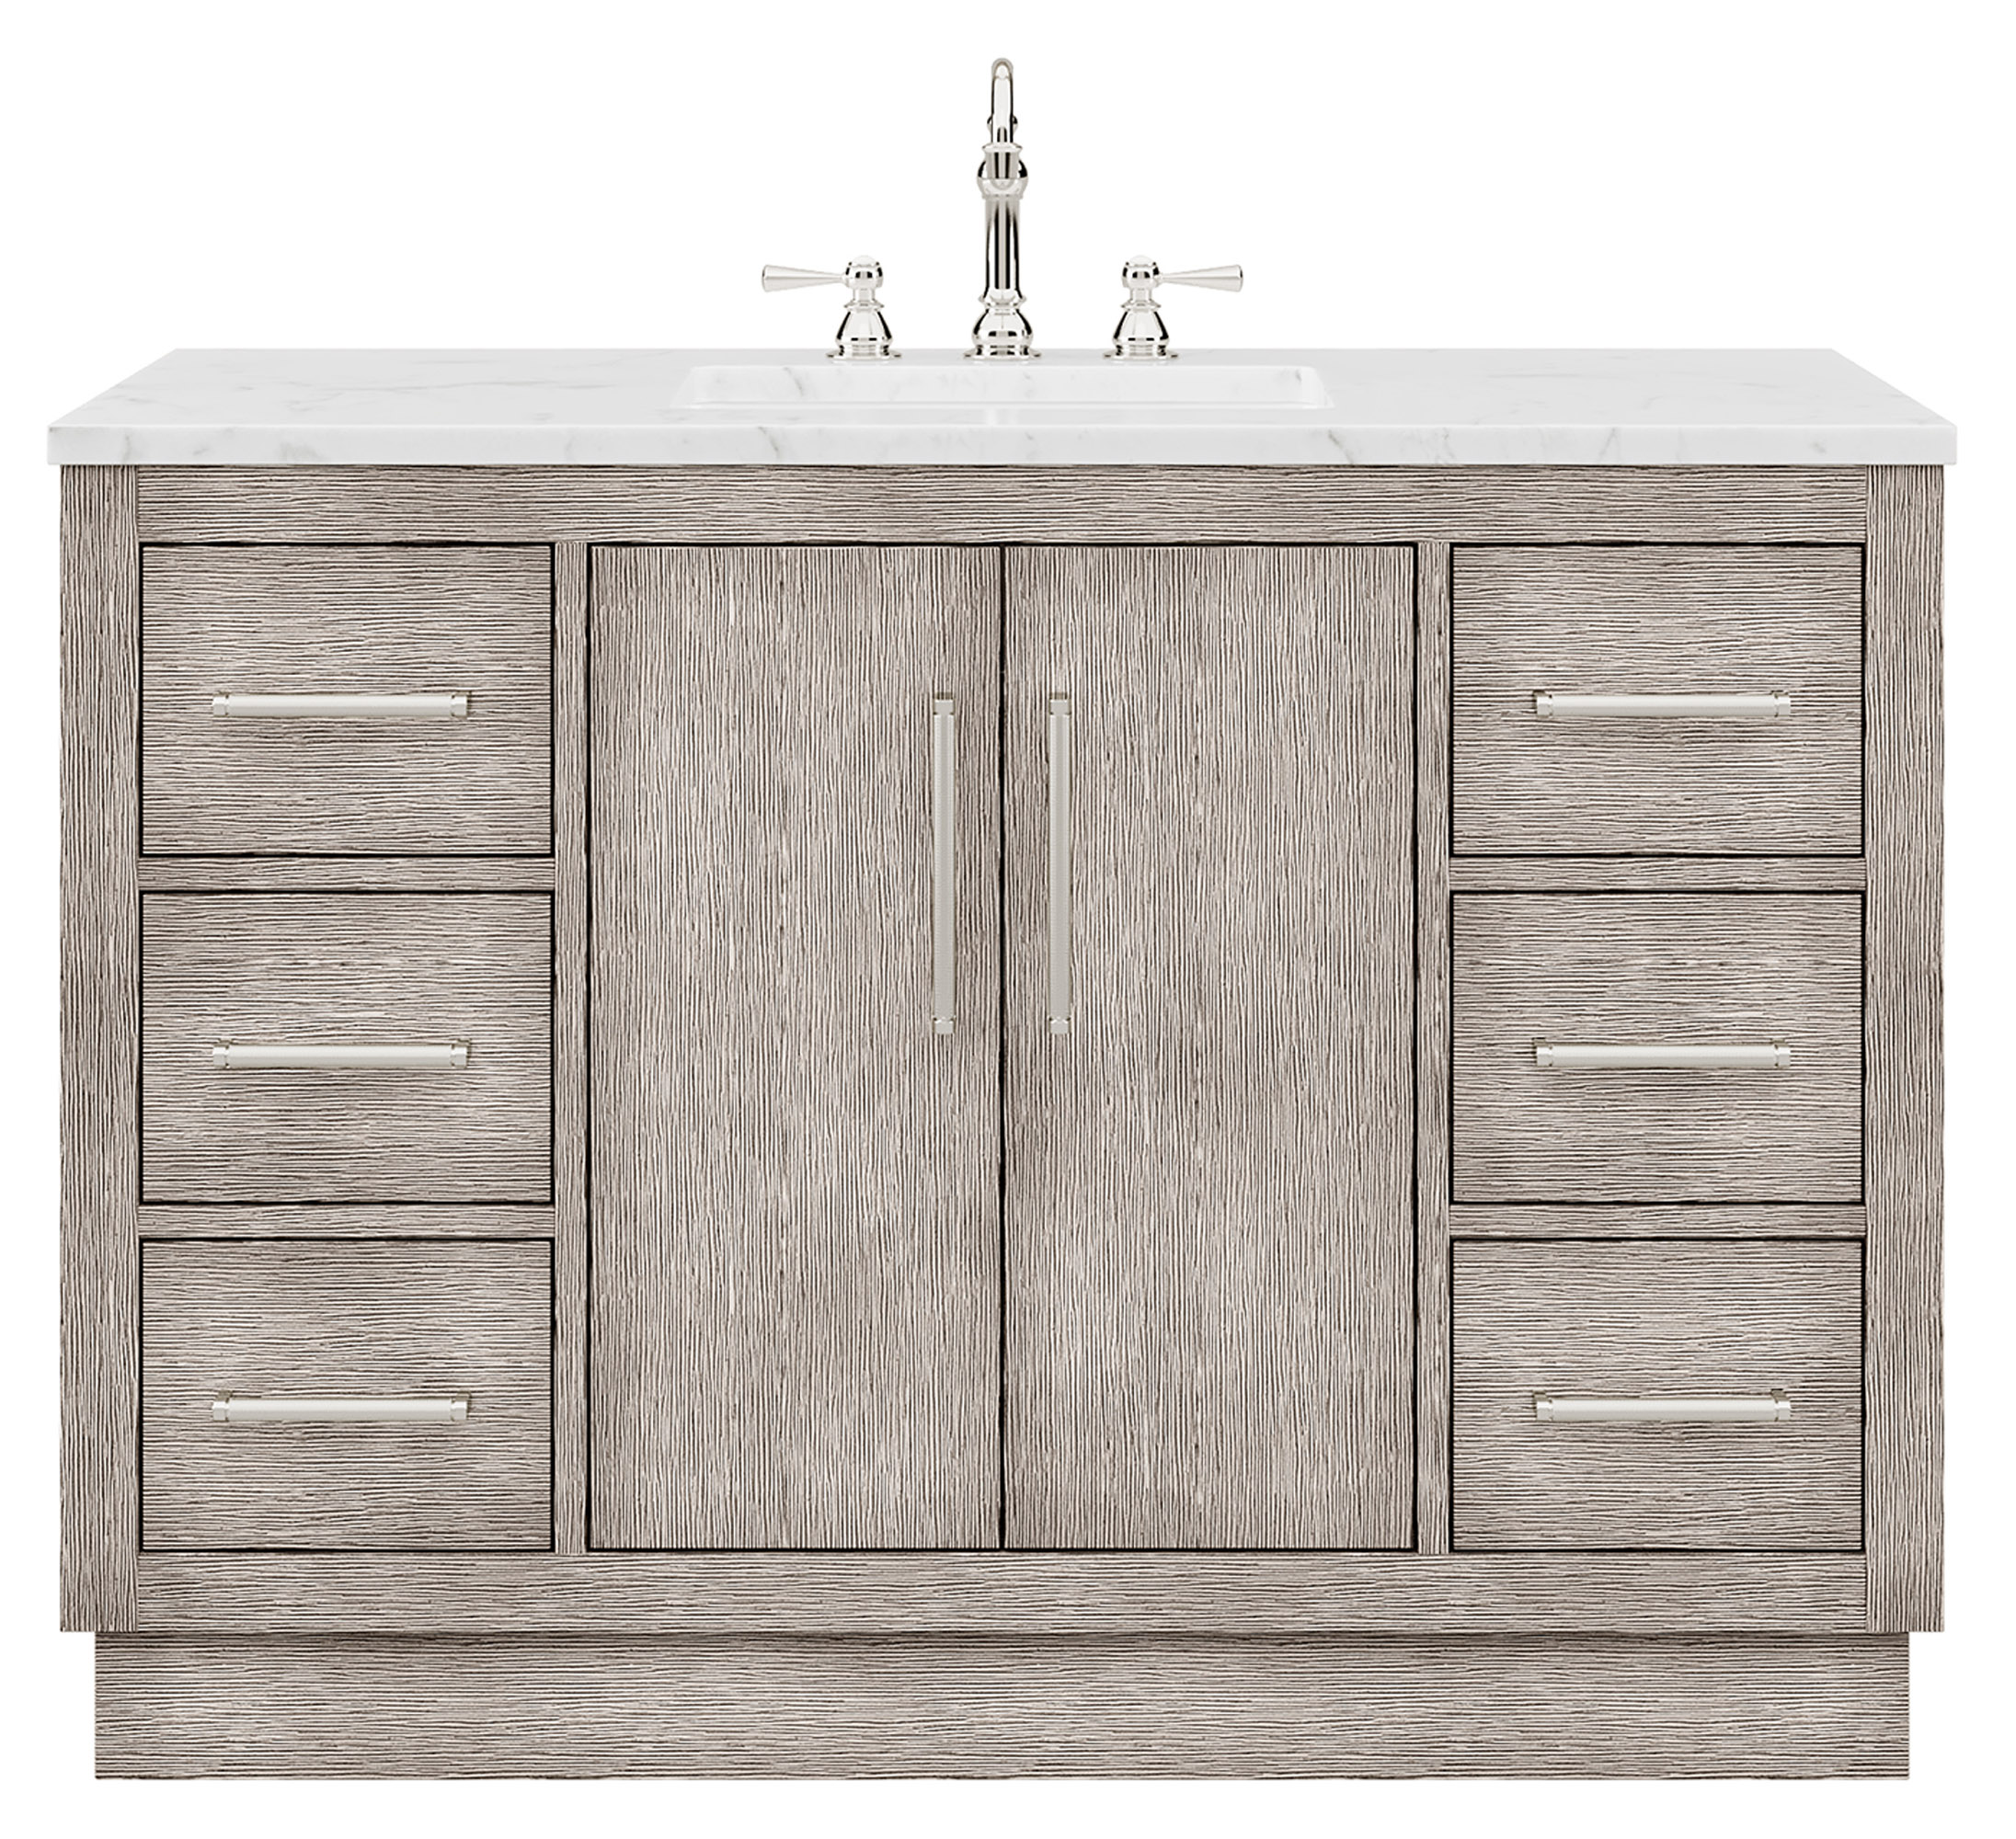 "48"" Single Sink Carrara White Marble Countertop Vanity in Grey Oak with Mirror and Faucet Options"